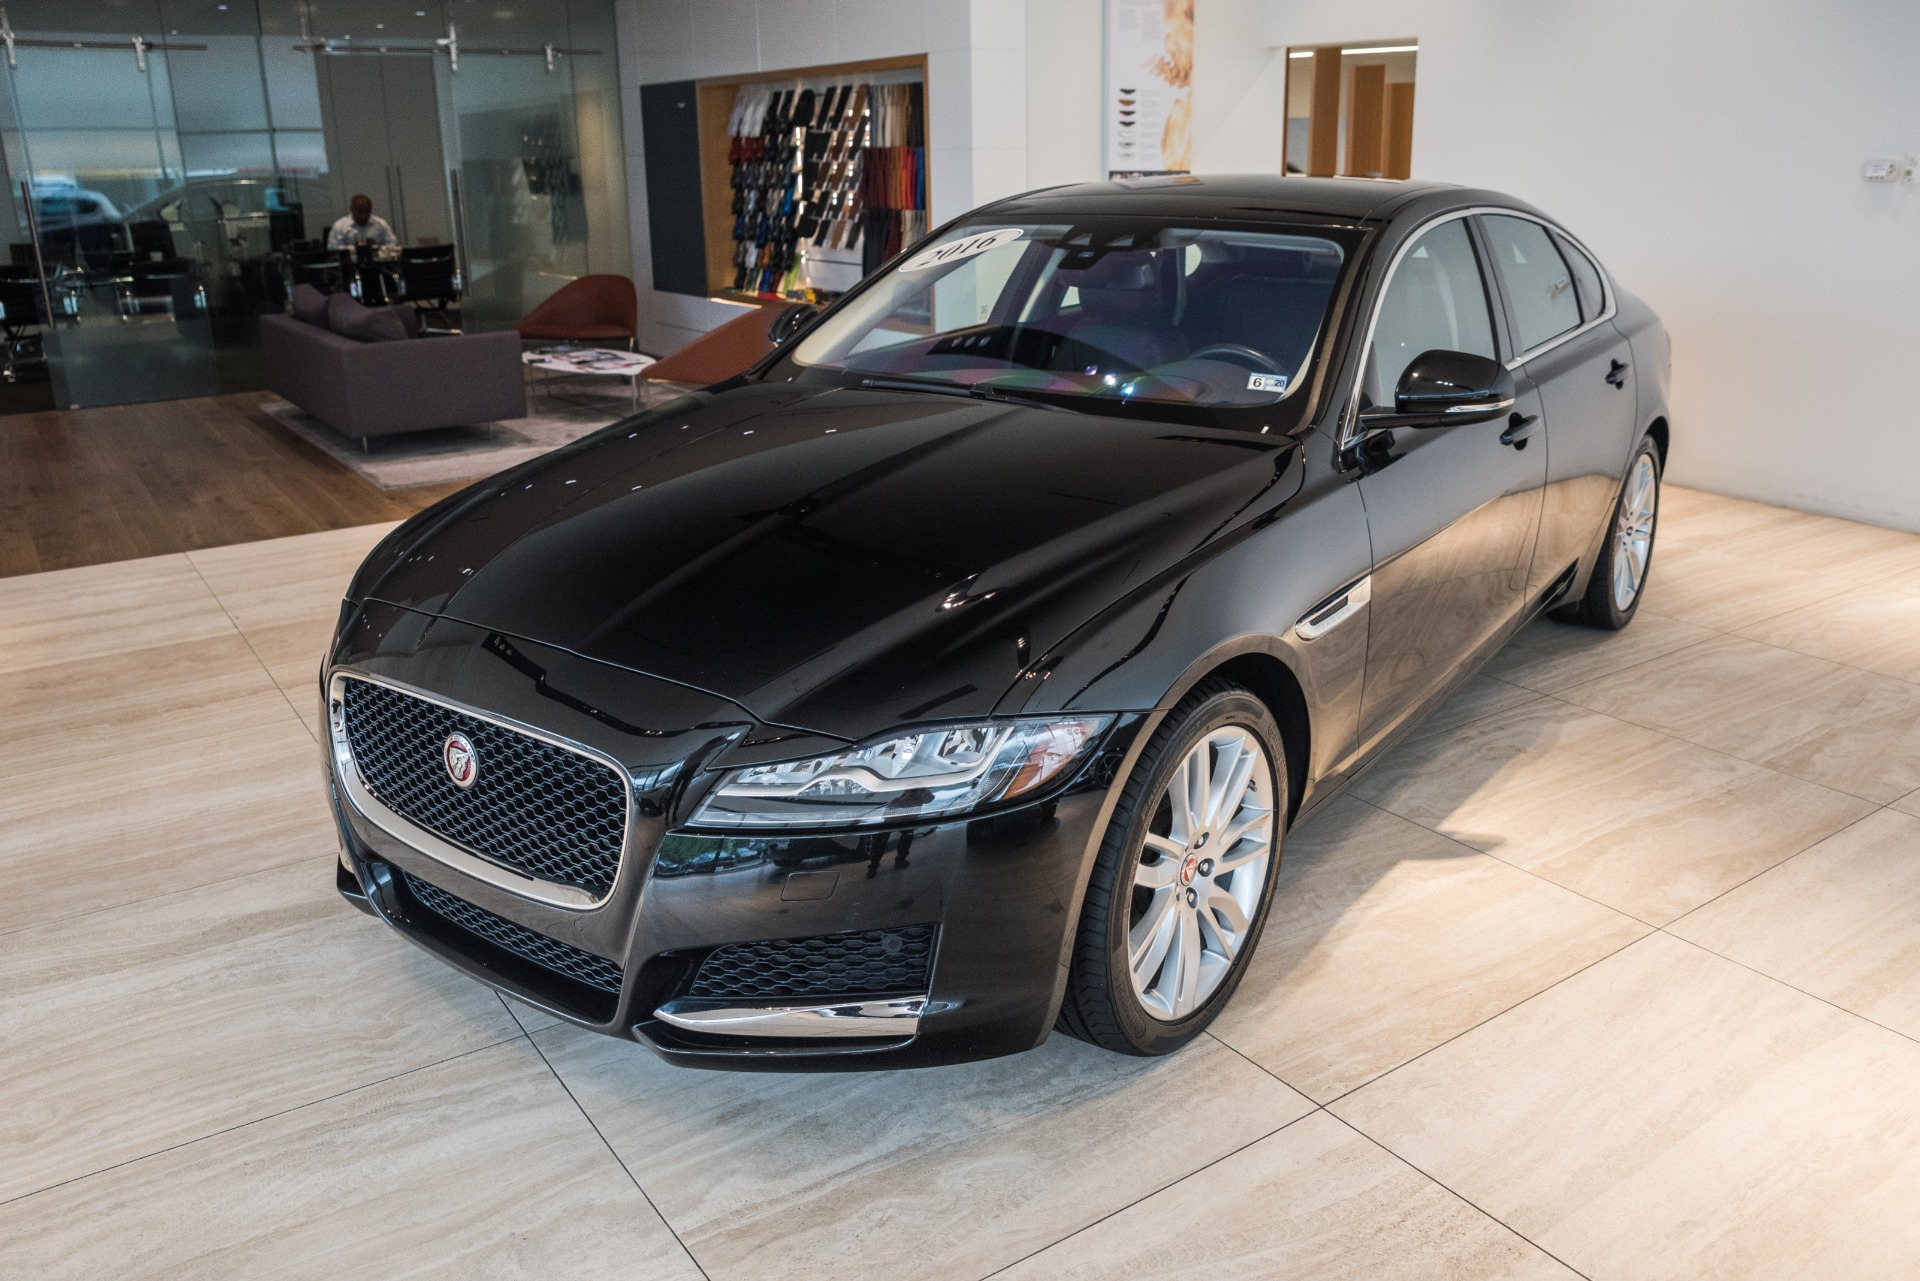 2016 Jaguar Xf 35t Prestige Stock Py18972 For Sale Near